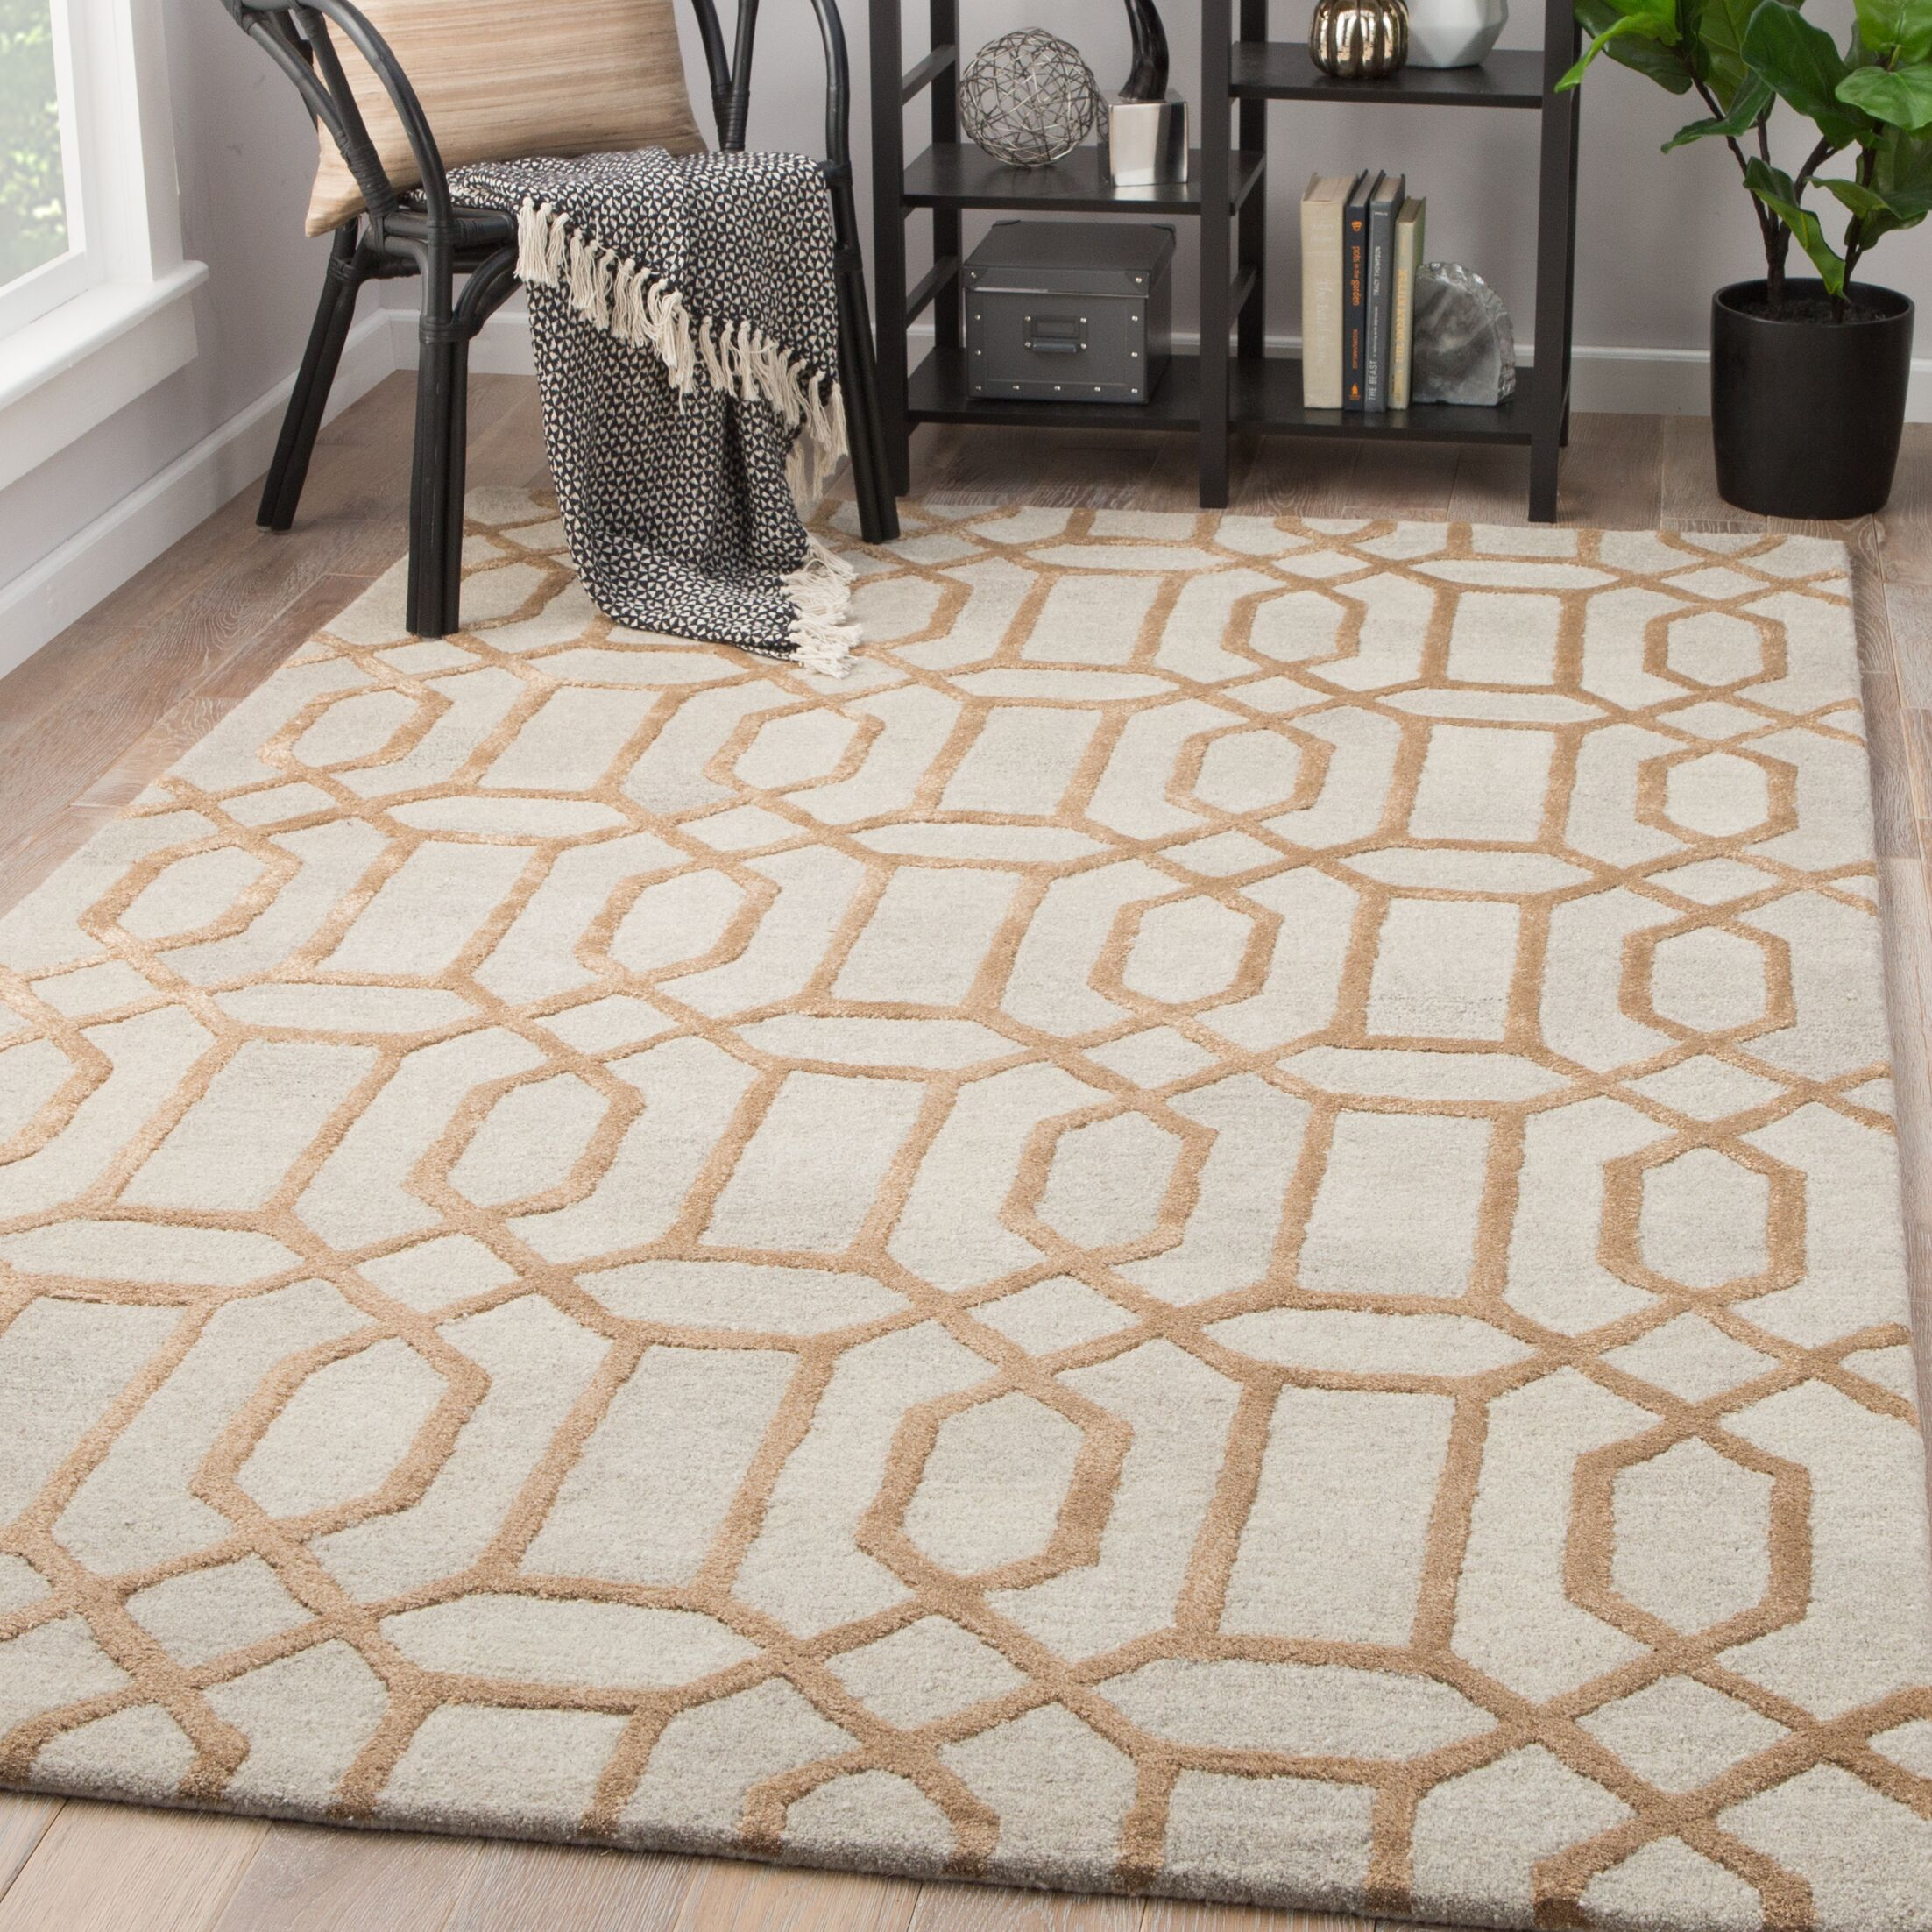 Hebb Hand-Tufted Crème Brulee/Steel Gray Area Rug Rug Size: Rectangle 2' x 3'